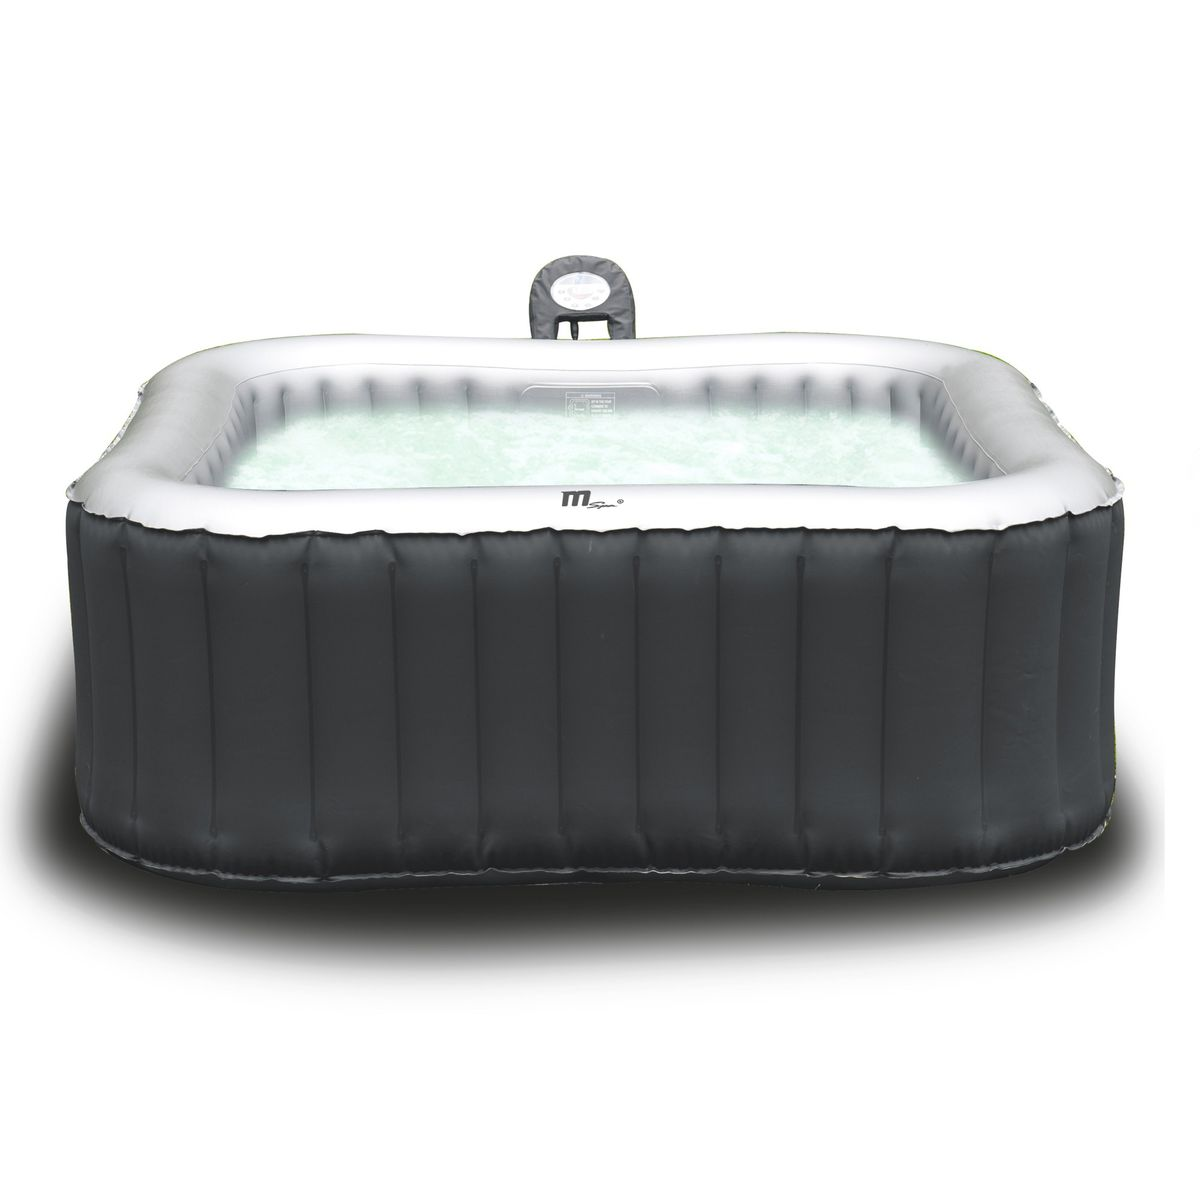 mspa alpine b091 inflatable spa buy online in south africa. Black Bedroom Furniture Sets. Home Design Ideas